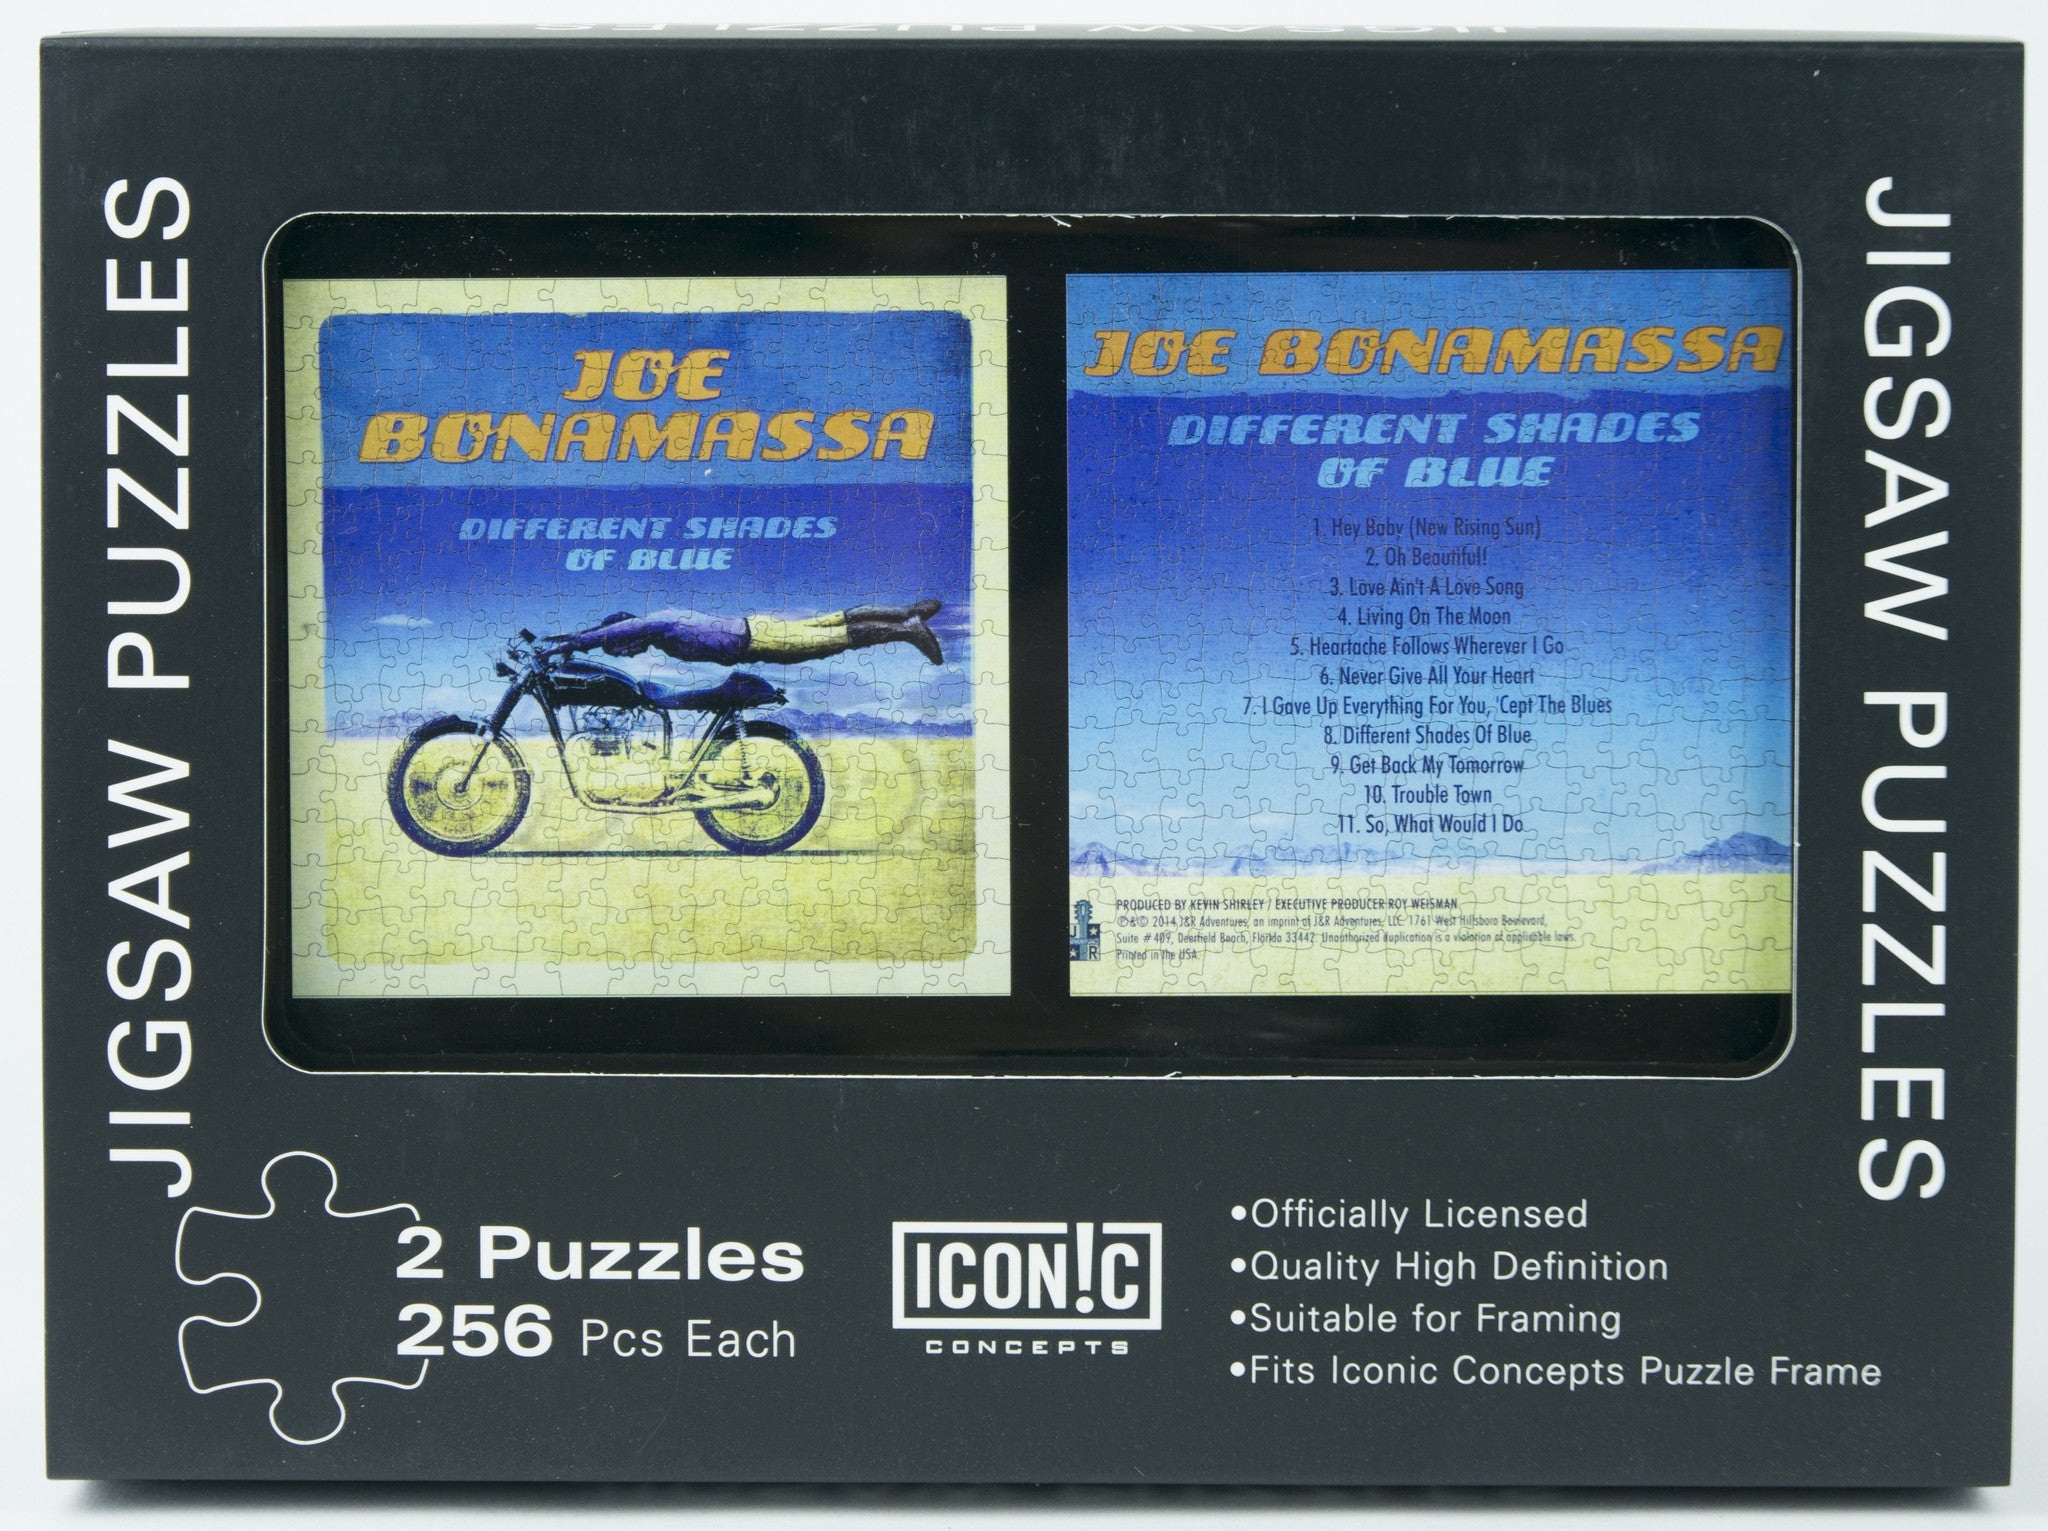 Joe Bonamassa Dual Pack Puzzle - Different Shades Of Blue